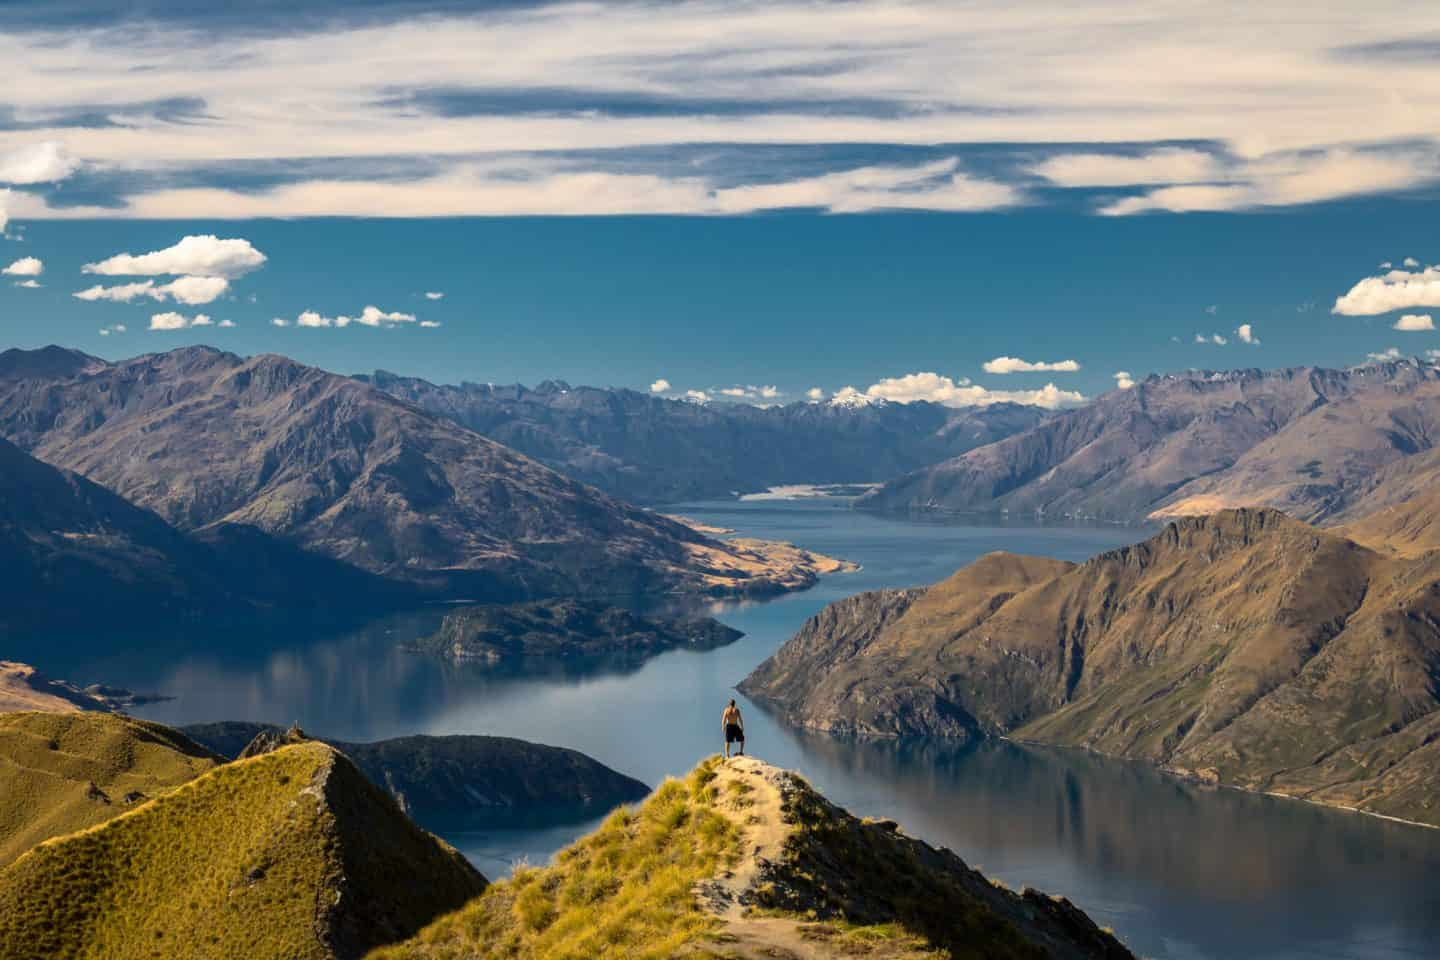 Roys Peak is among the most popular destination for New Zealand landscape photography.